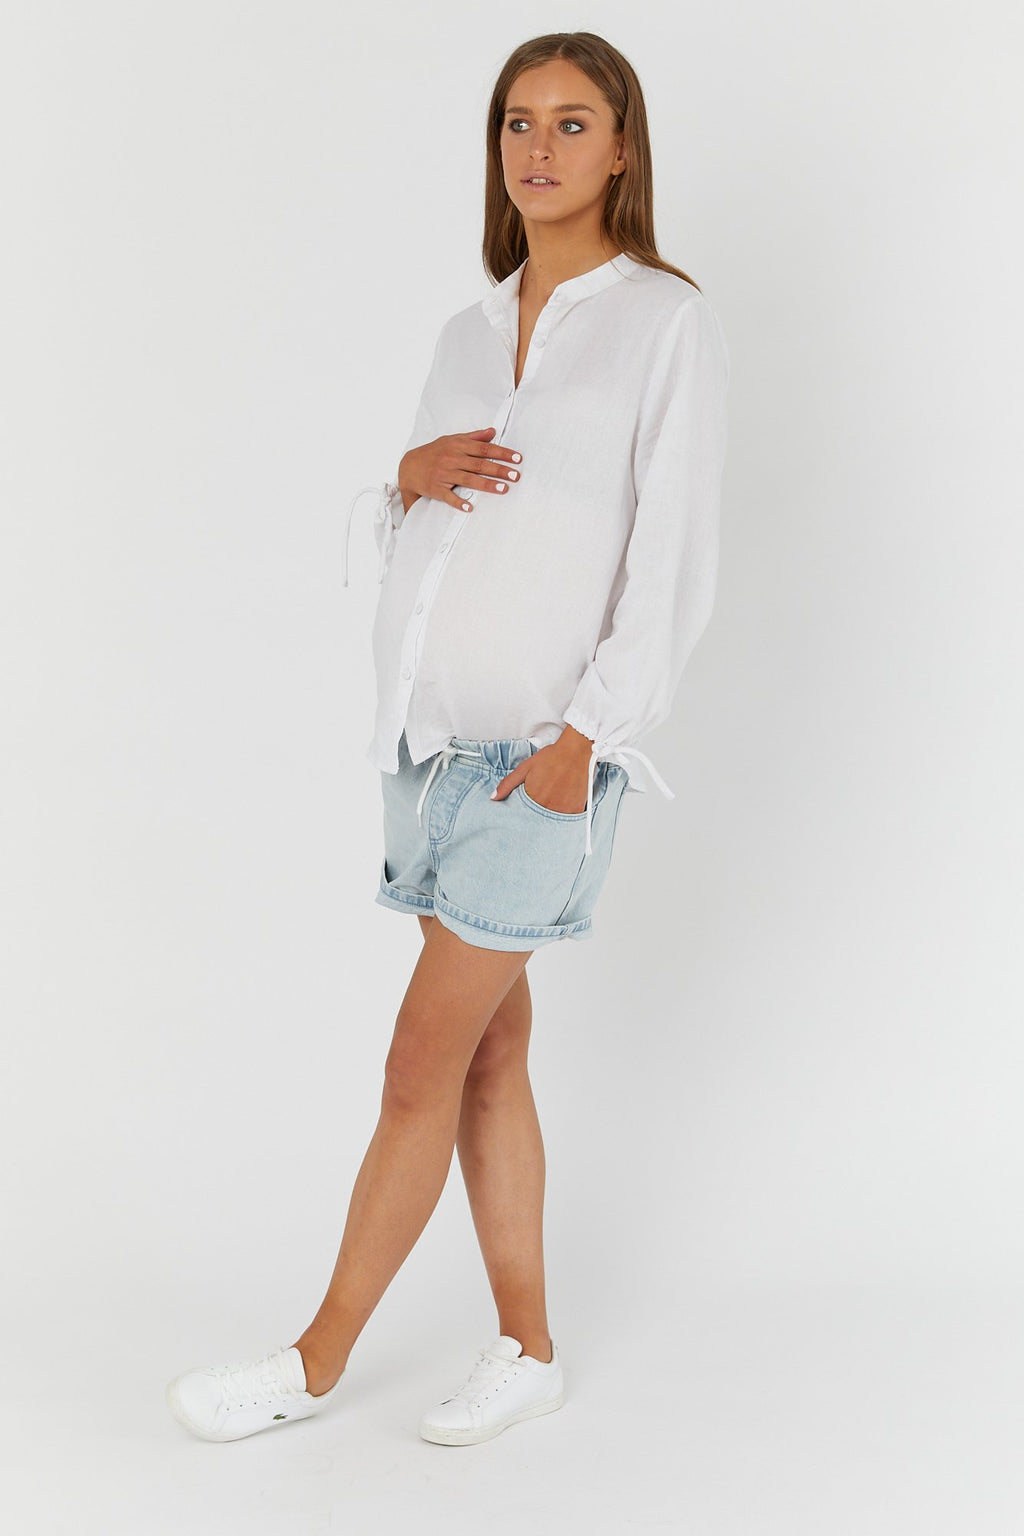 maternity denim shorts | mom denim shorties | ice - MUMMA + BUBBA COLLECTIVE